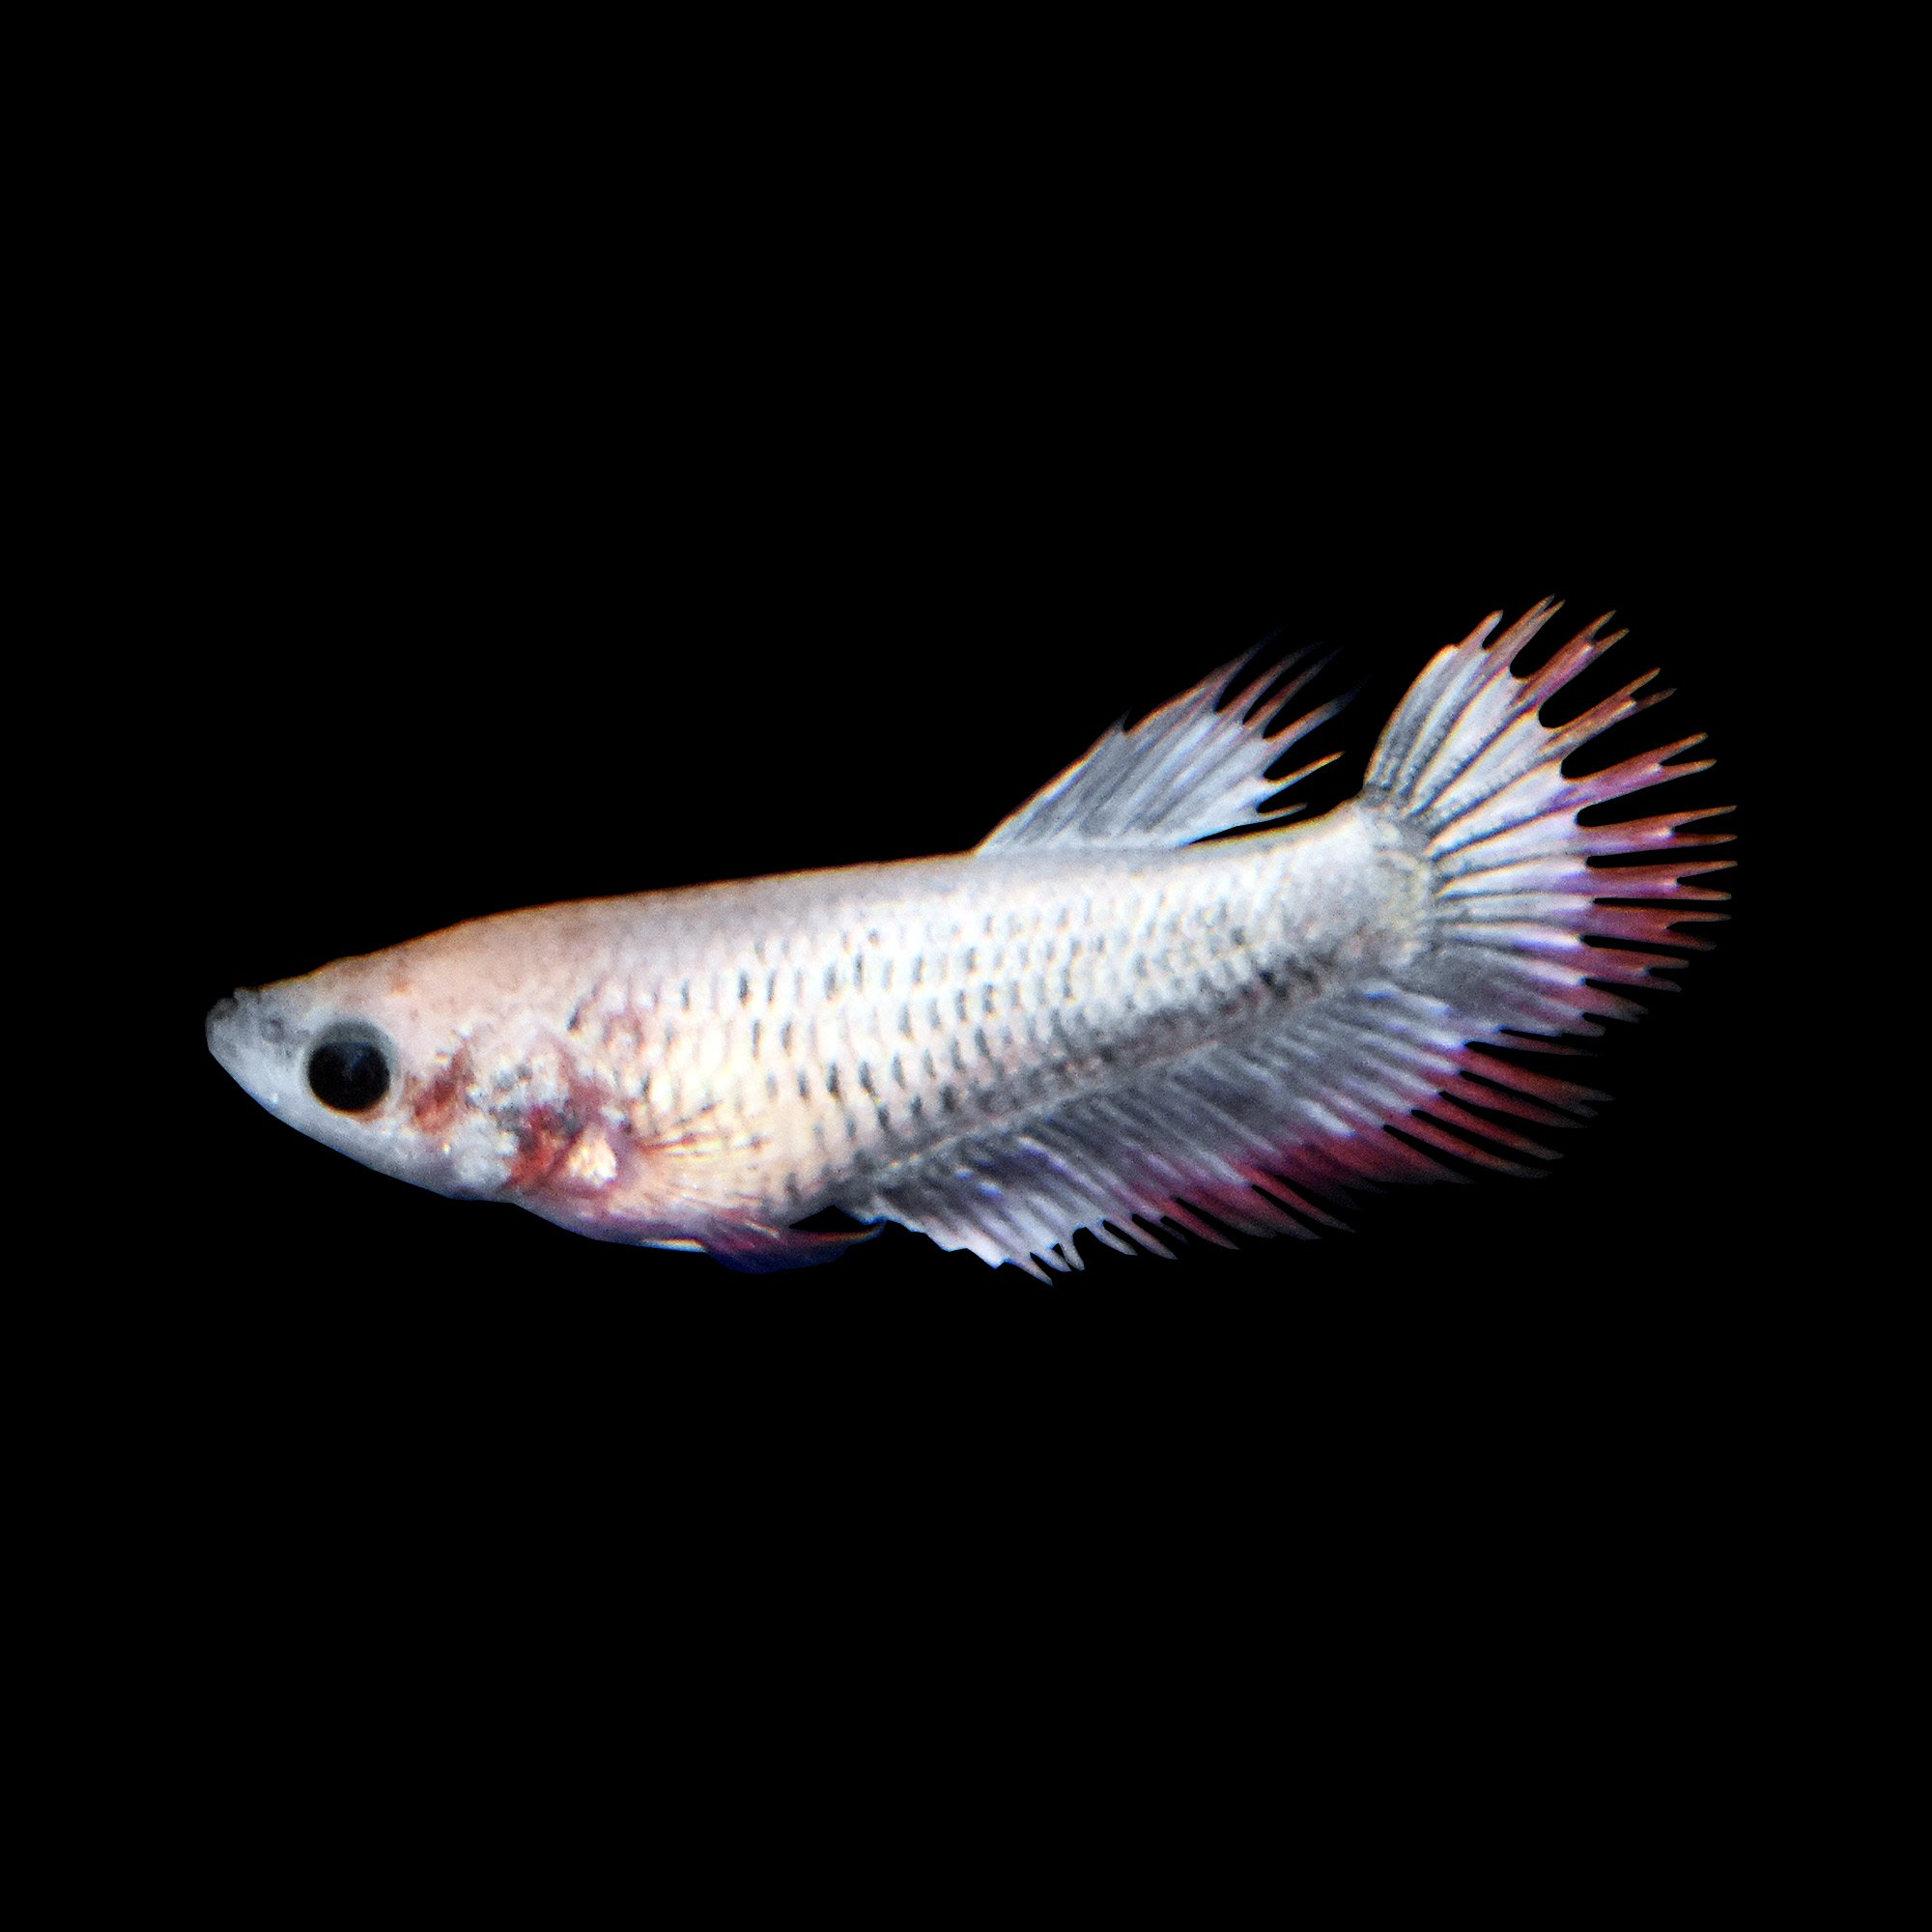 Female crowntail betta fish siamese fighting fish for Betta fish sale